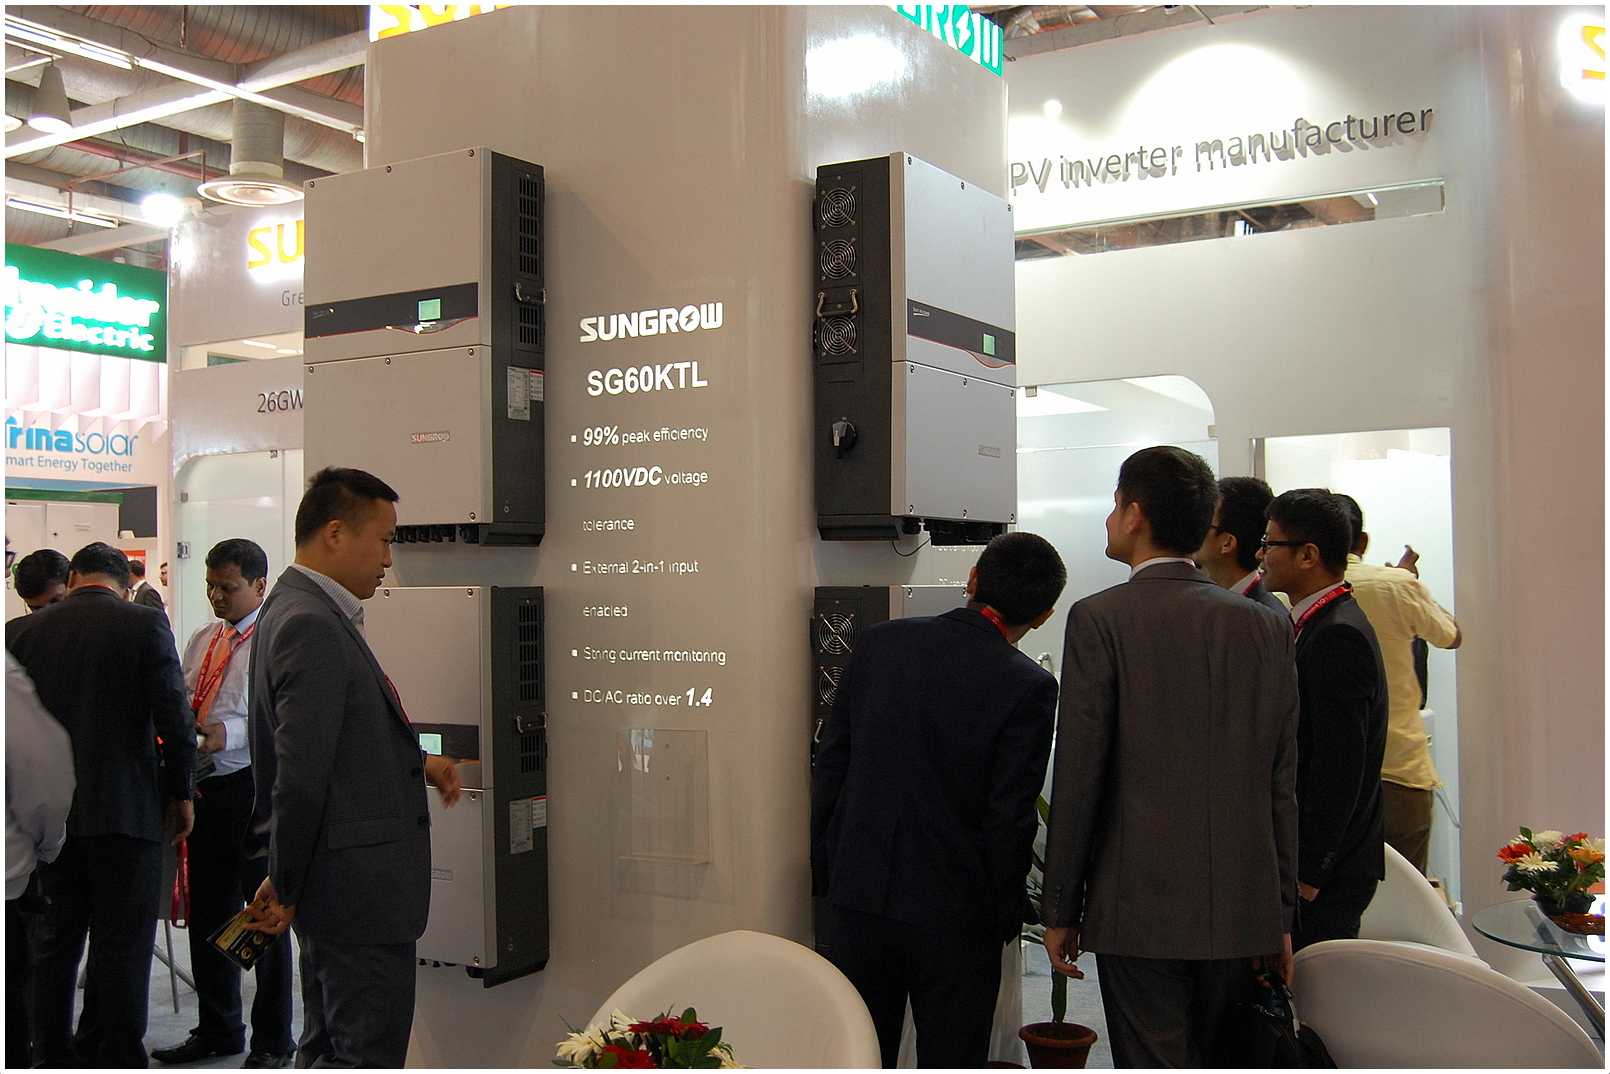 Sungrow releases new inverters at Renewable Energy India Expo 2016